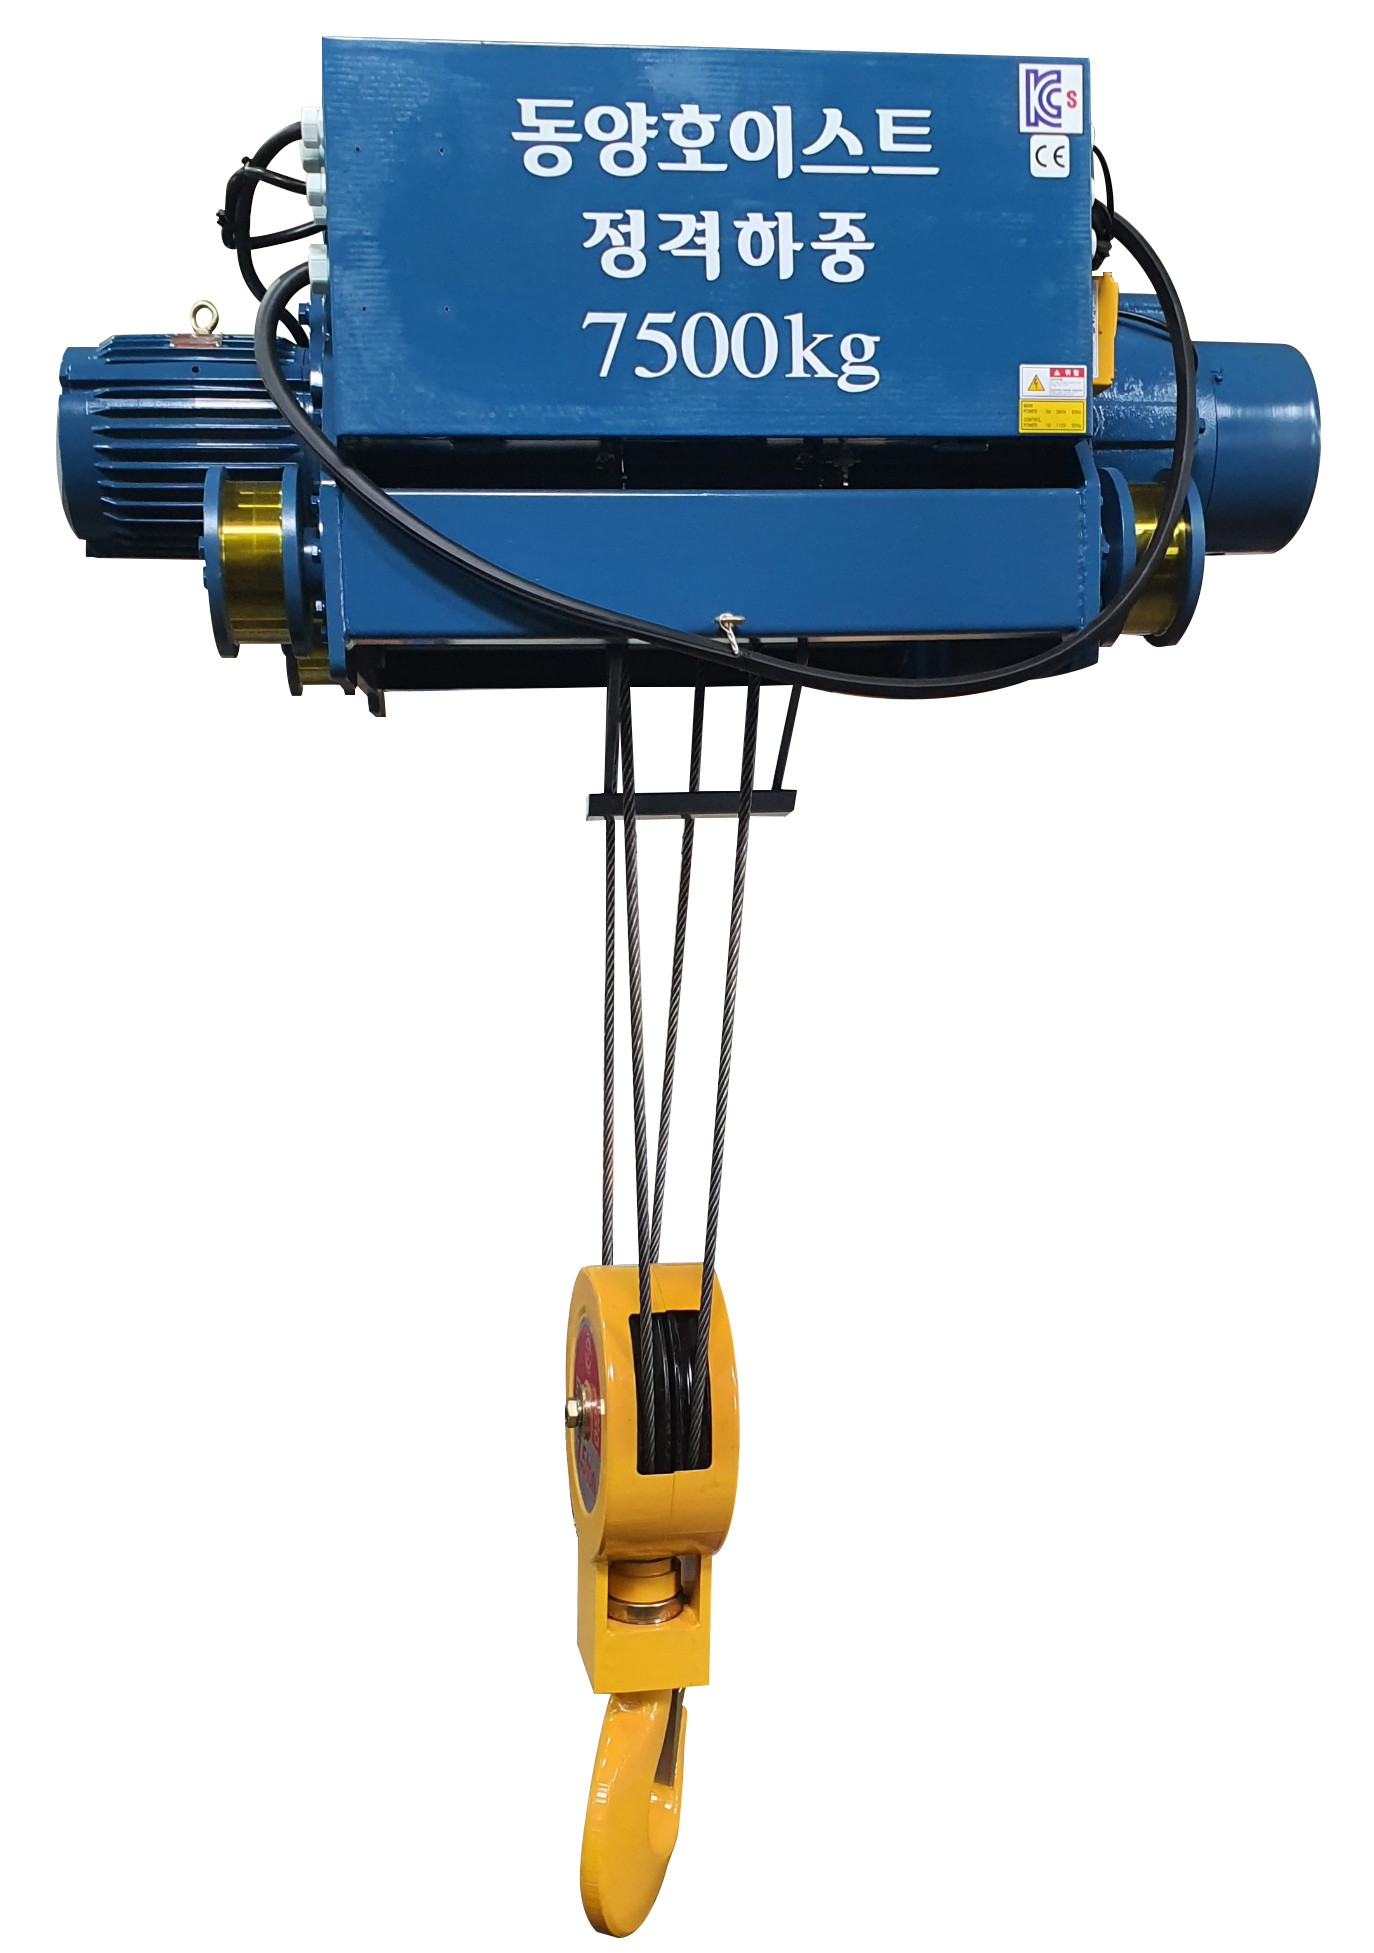 If the product weighs more than 5 tons and is less than 10 tons, we recommend that you use a product...